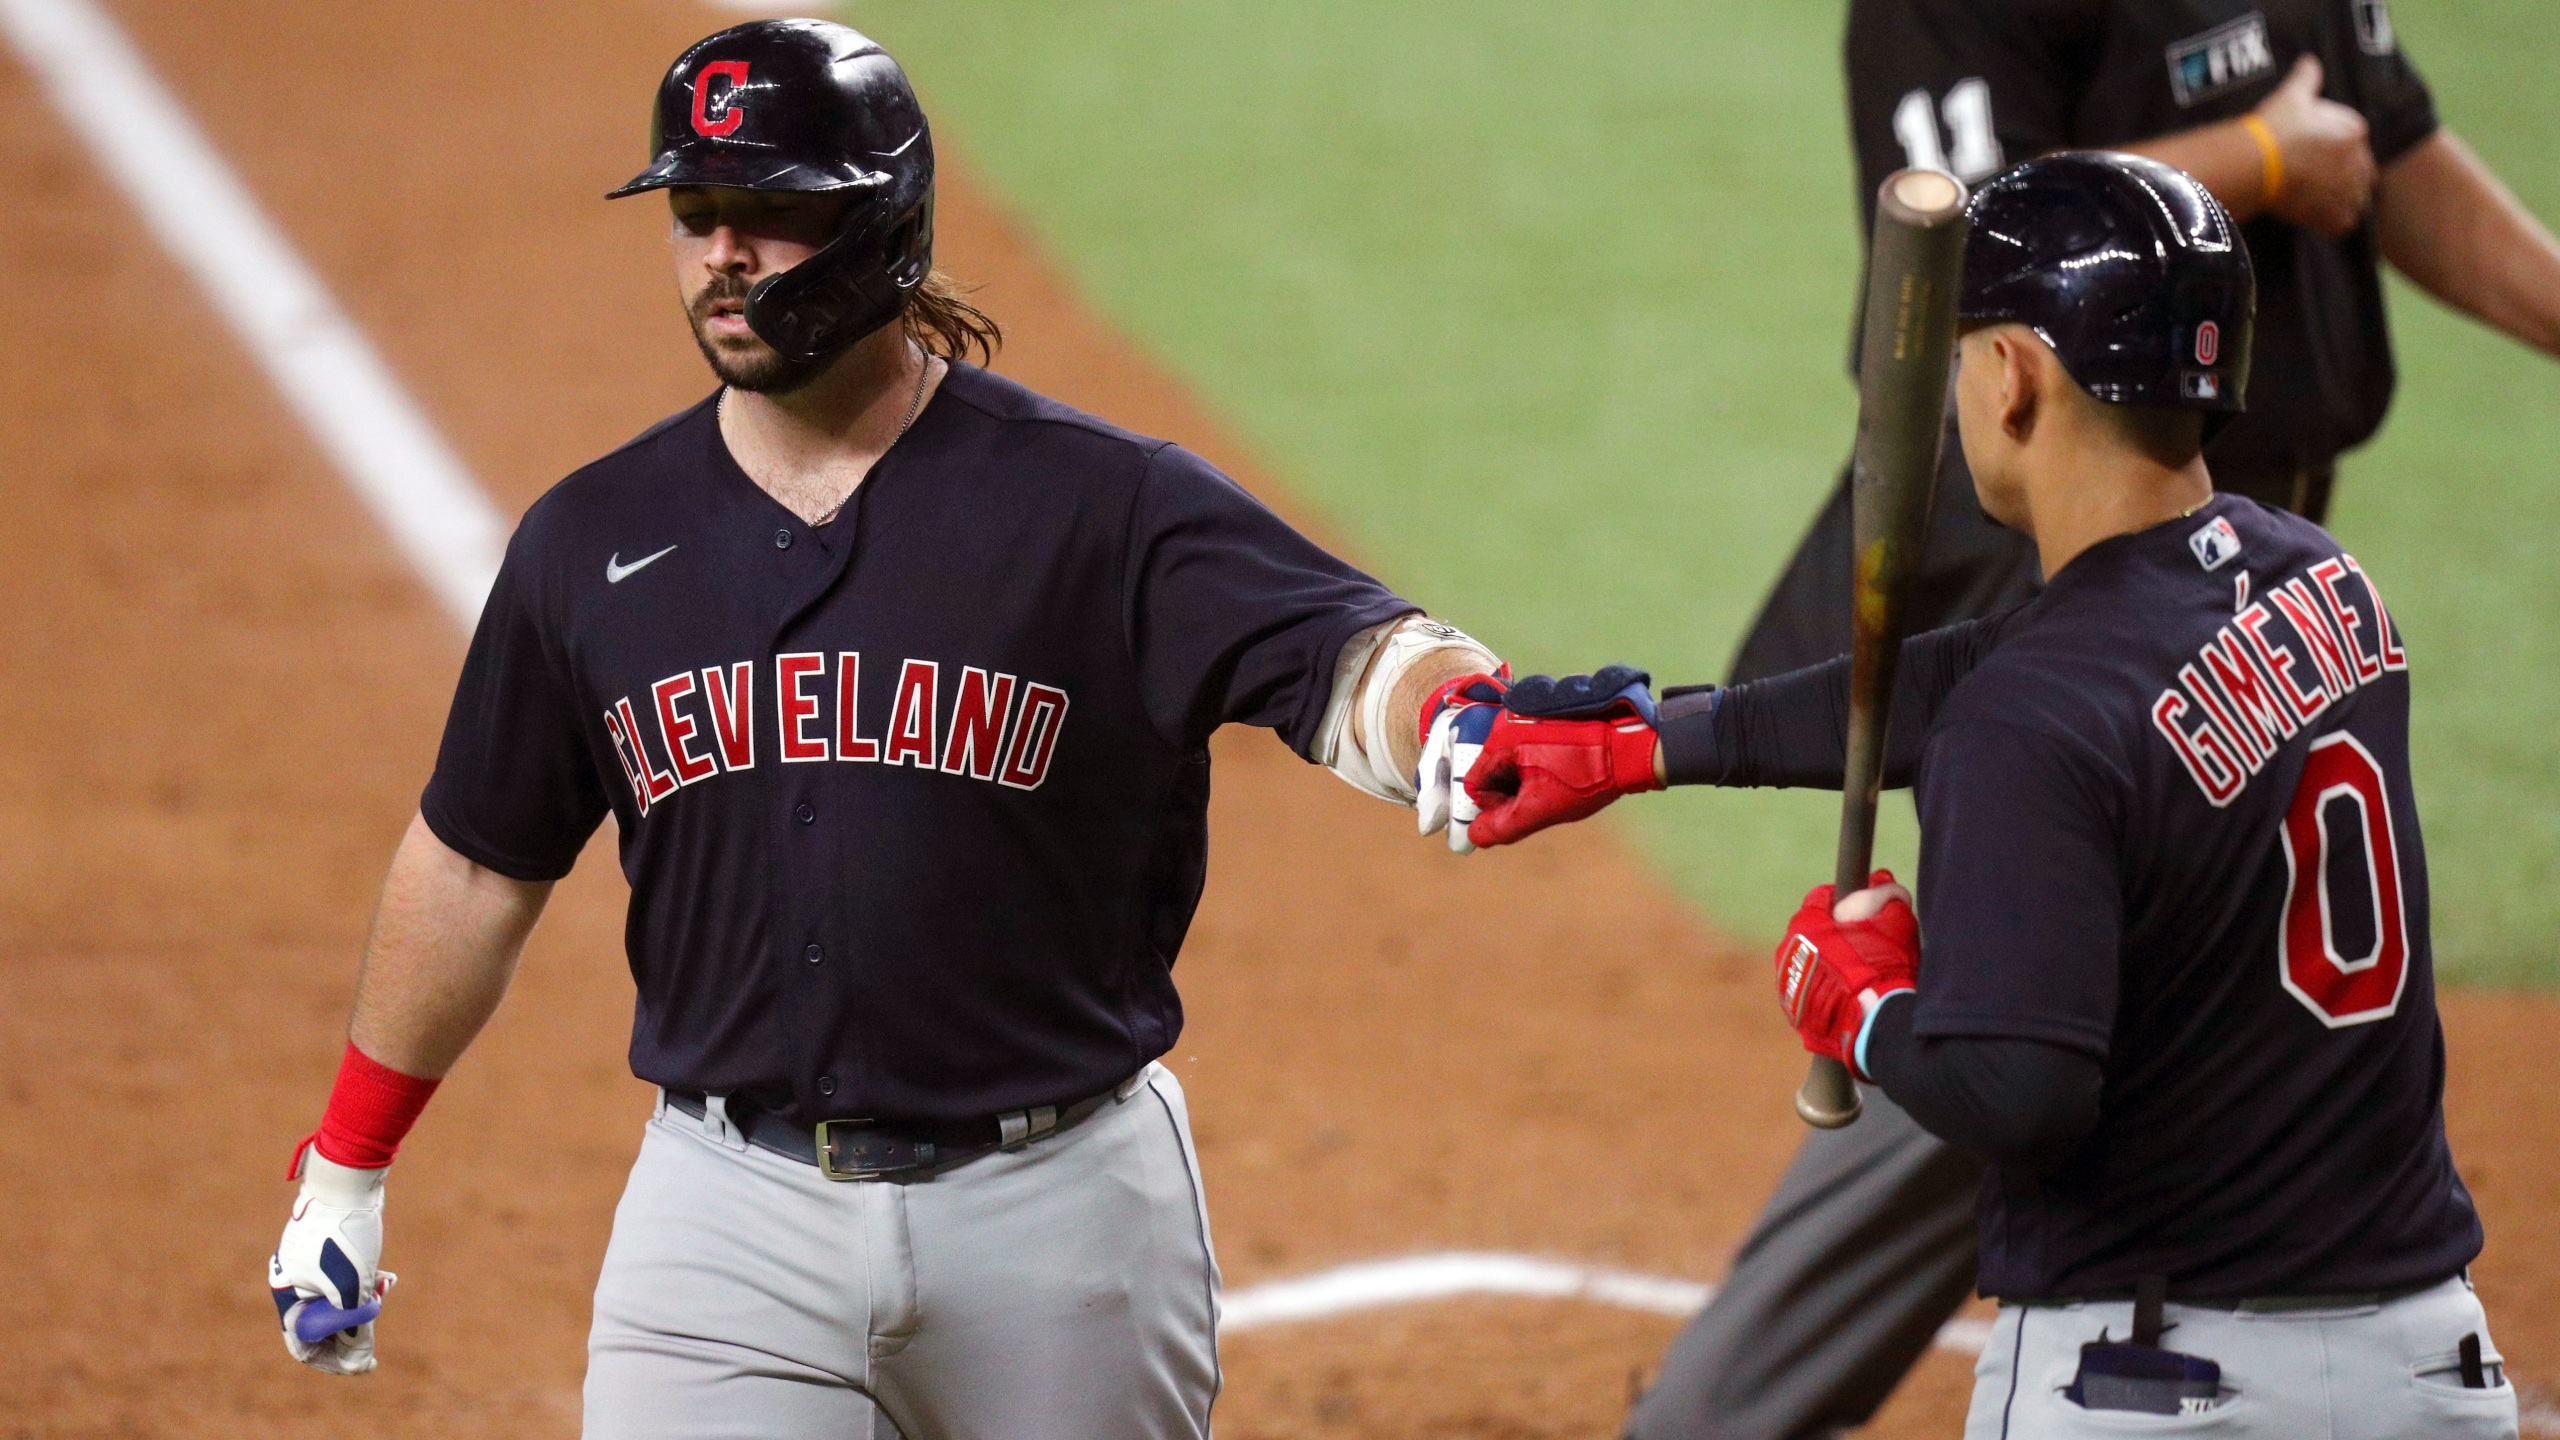 Cleveland Indians Austin Hedges (17) is greeted by Andres Gimenez (0) after scoring on a solo home run against the Texas Rangers in the third inning of a baseball game Friday, Oct. 1, 2021, in Fort Worth, Texas. (AP Photo/Richard W. Rodriguez)